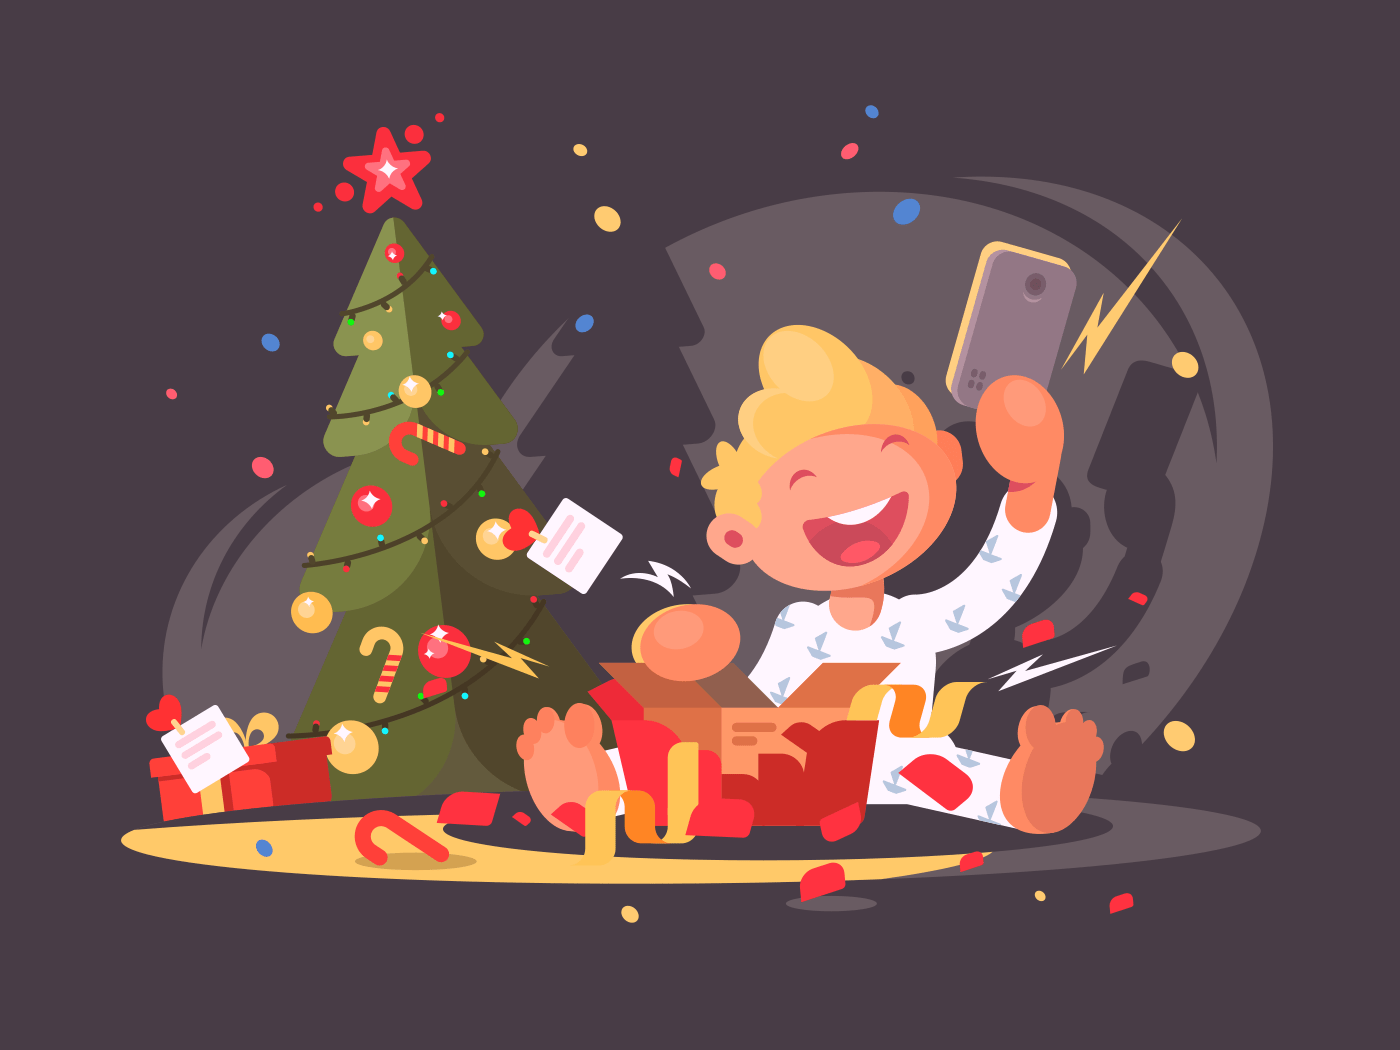 Child opens Christmas present illustration